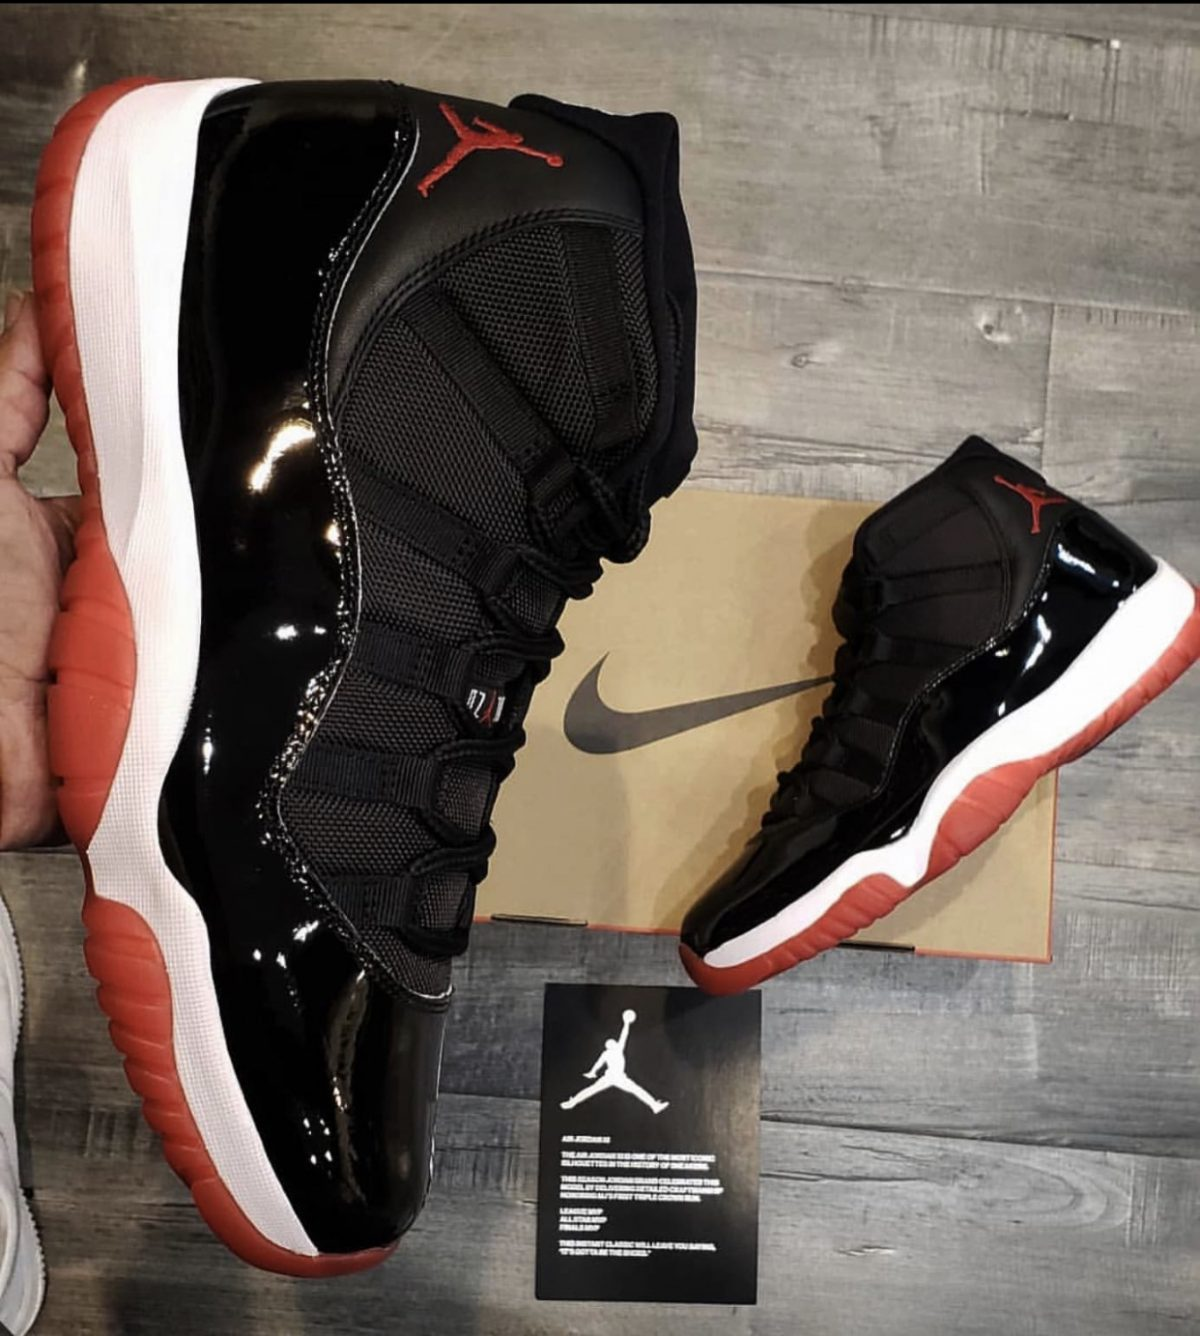 This Upcoming Air Jordan 11 'Bred' Release Will Be The Largest Release In History